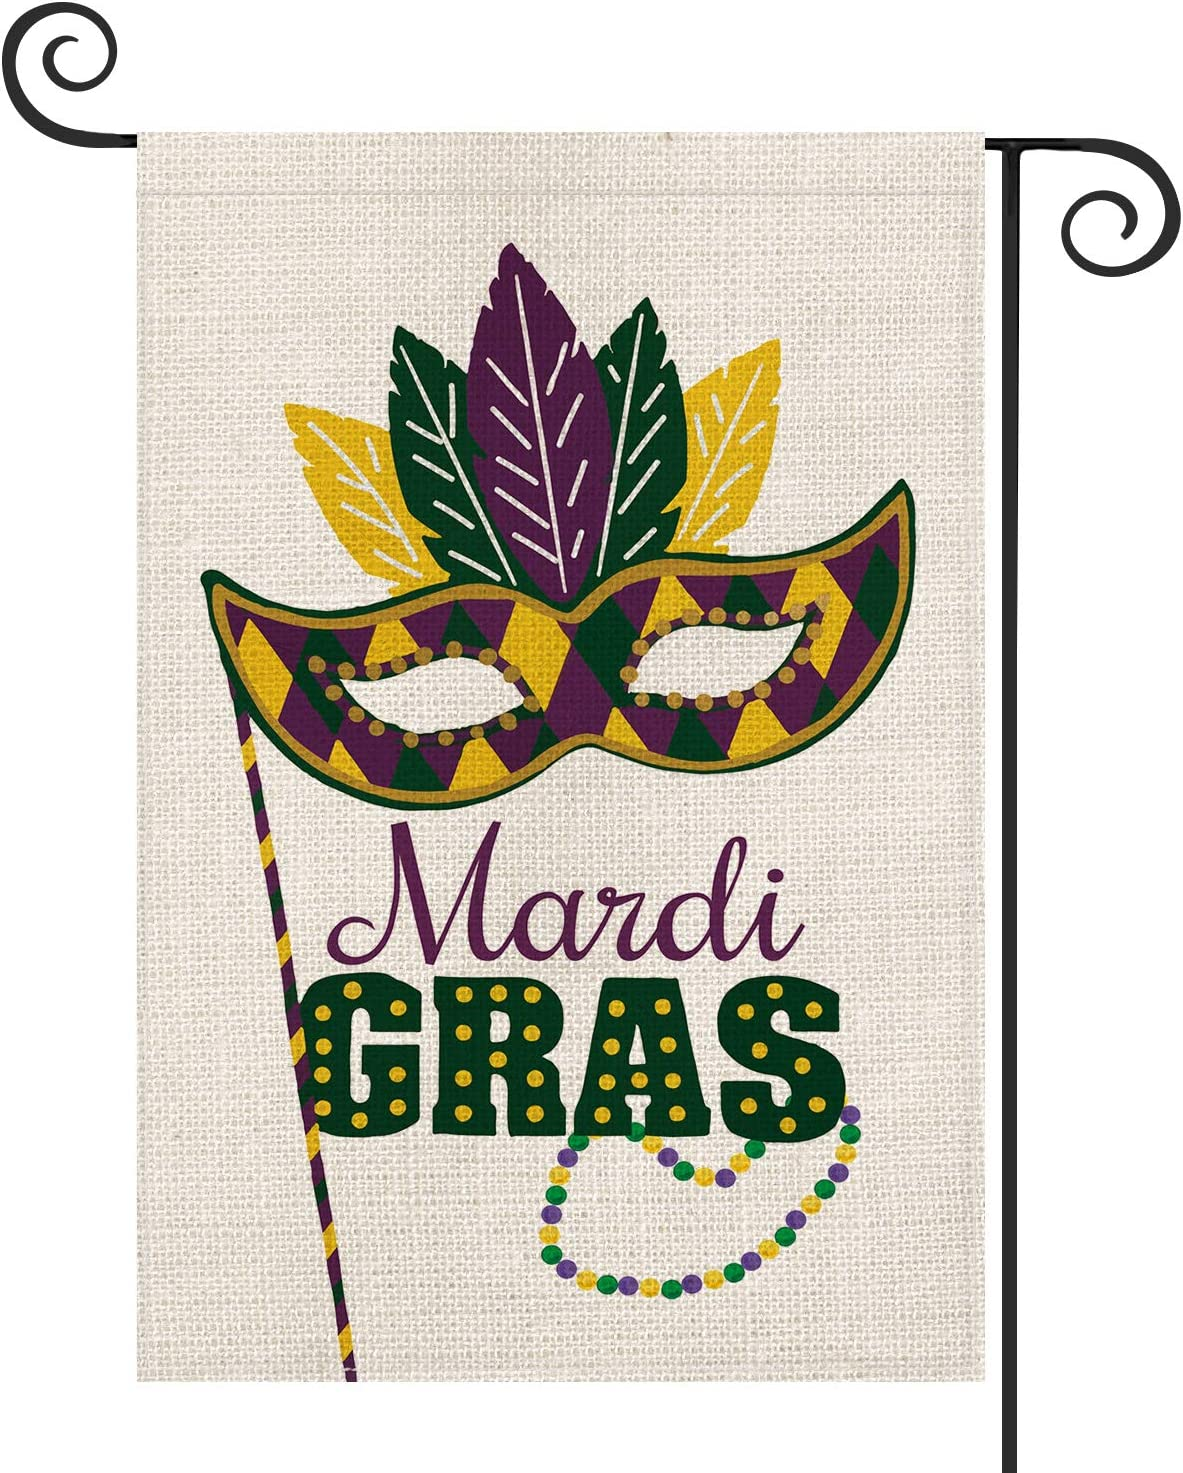 AVOIN Mardi Gras Masquerade Mask Garden Flag Vertical Double Sized, Holiday Party Mardi Gras Bead Yard Outdoor Decoration 12.5 x 18 Inch